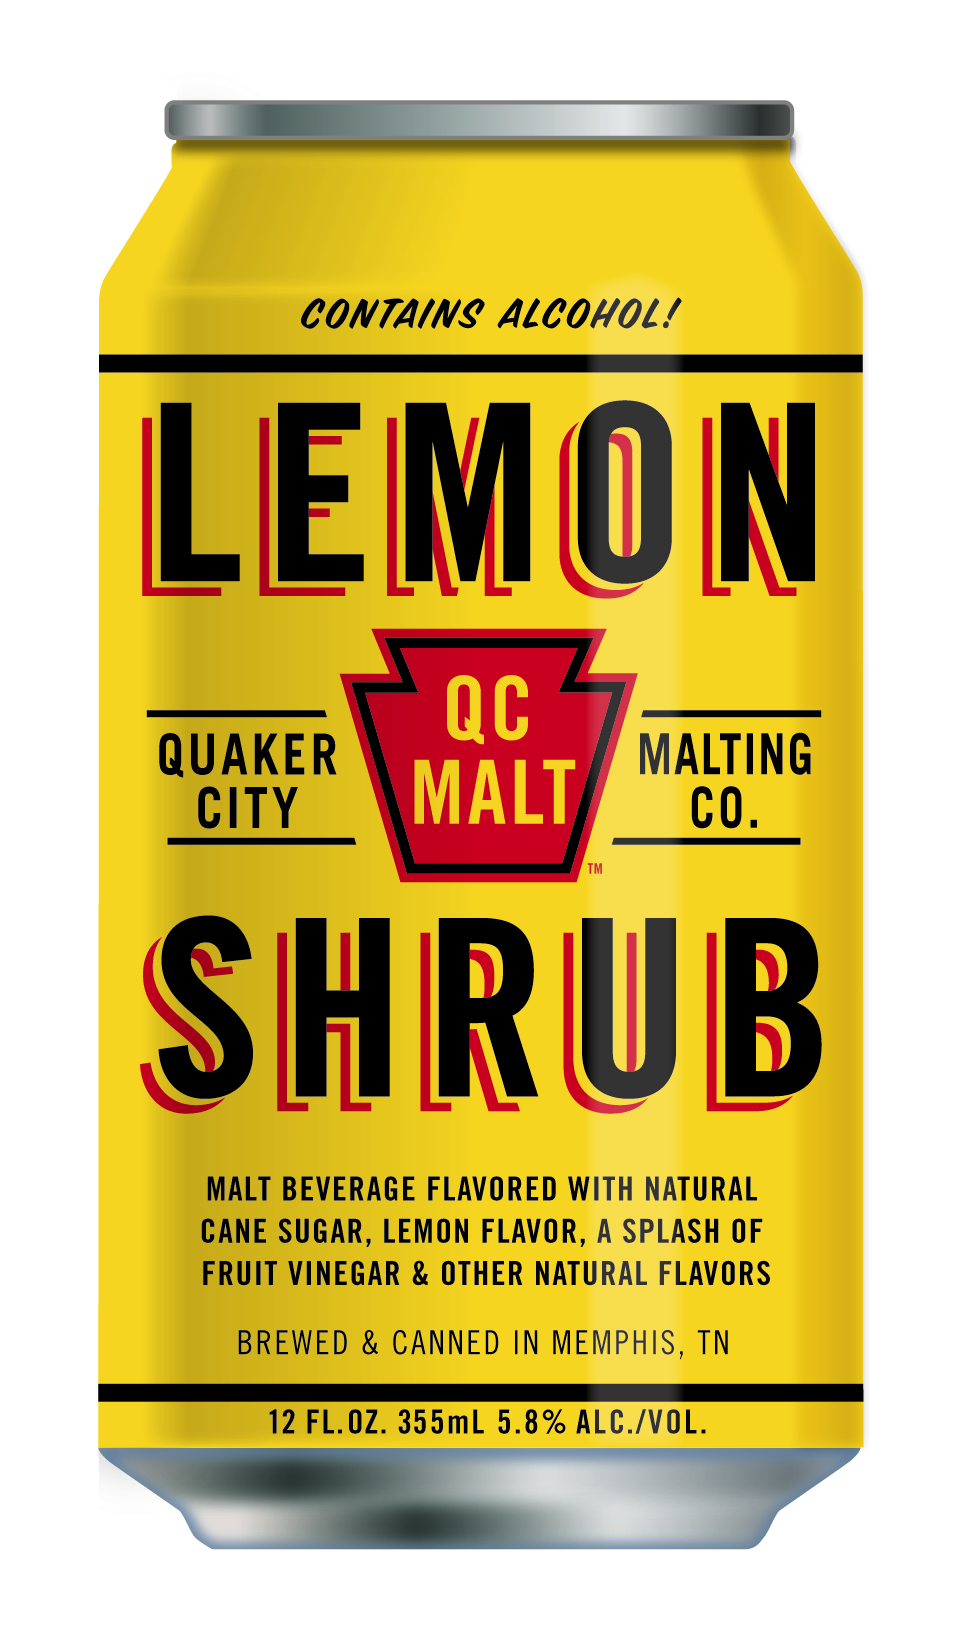 Lemon Shrub, by QC Malt